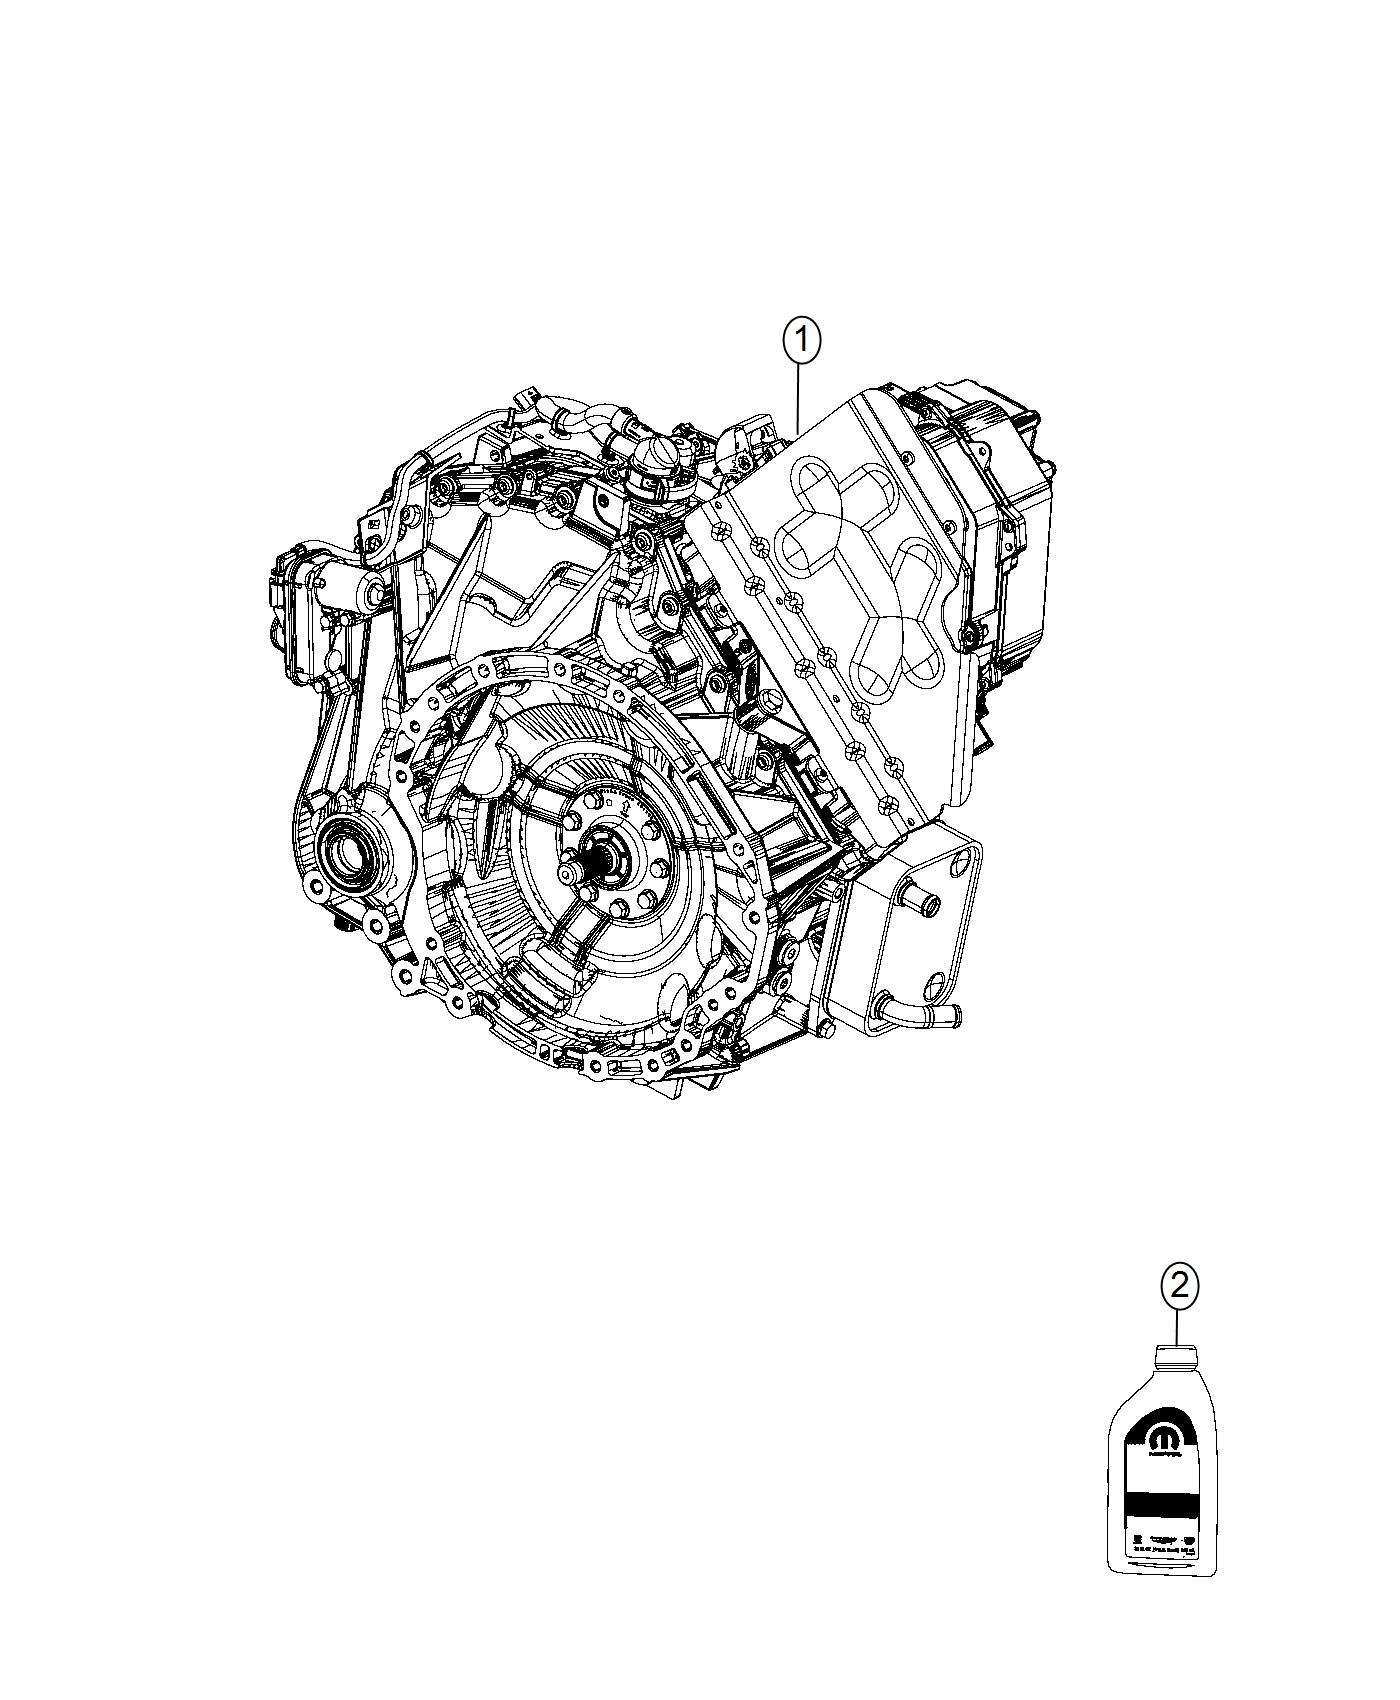 Chrysler Pacifica Transaxle Transmission Without Pim